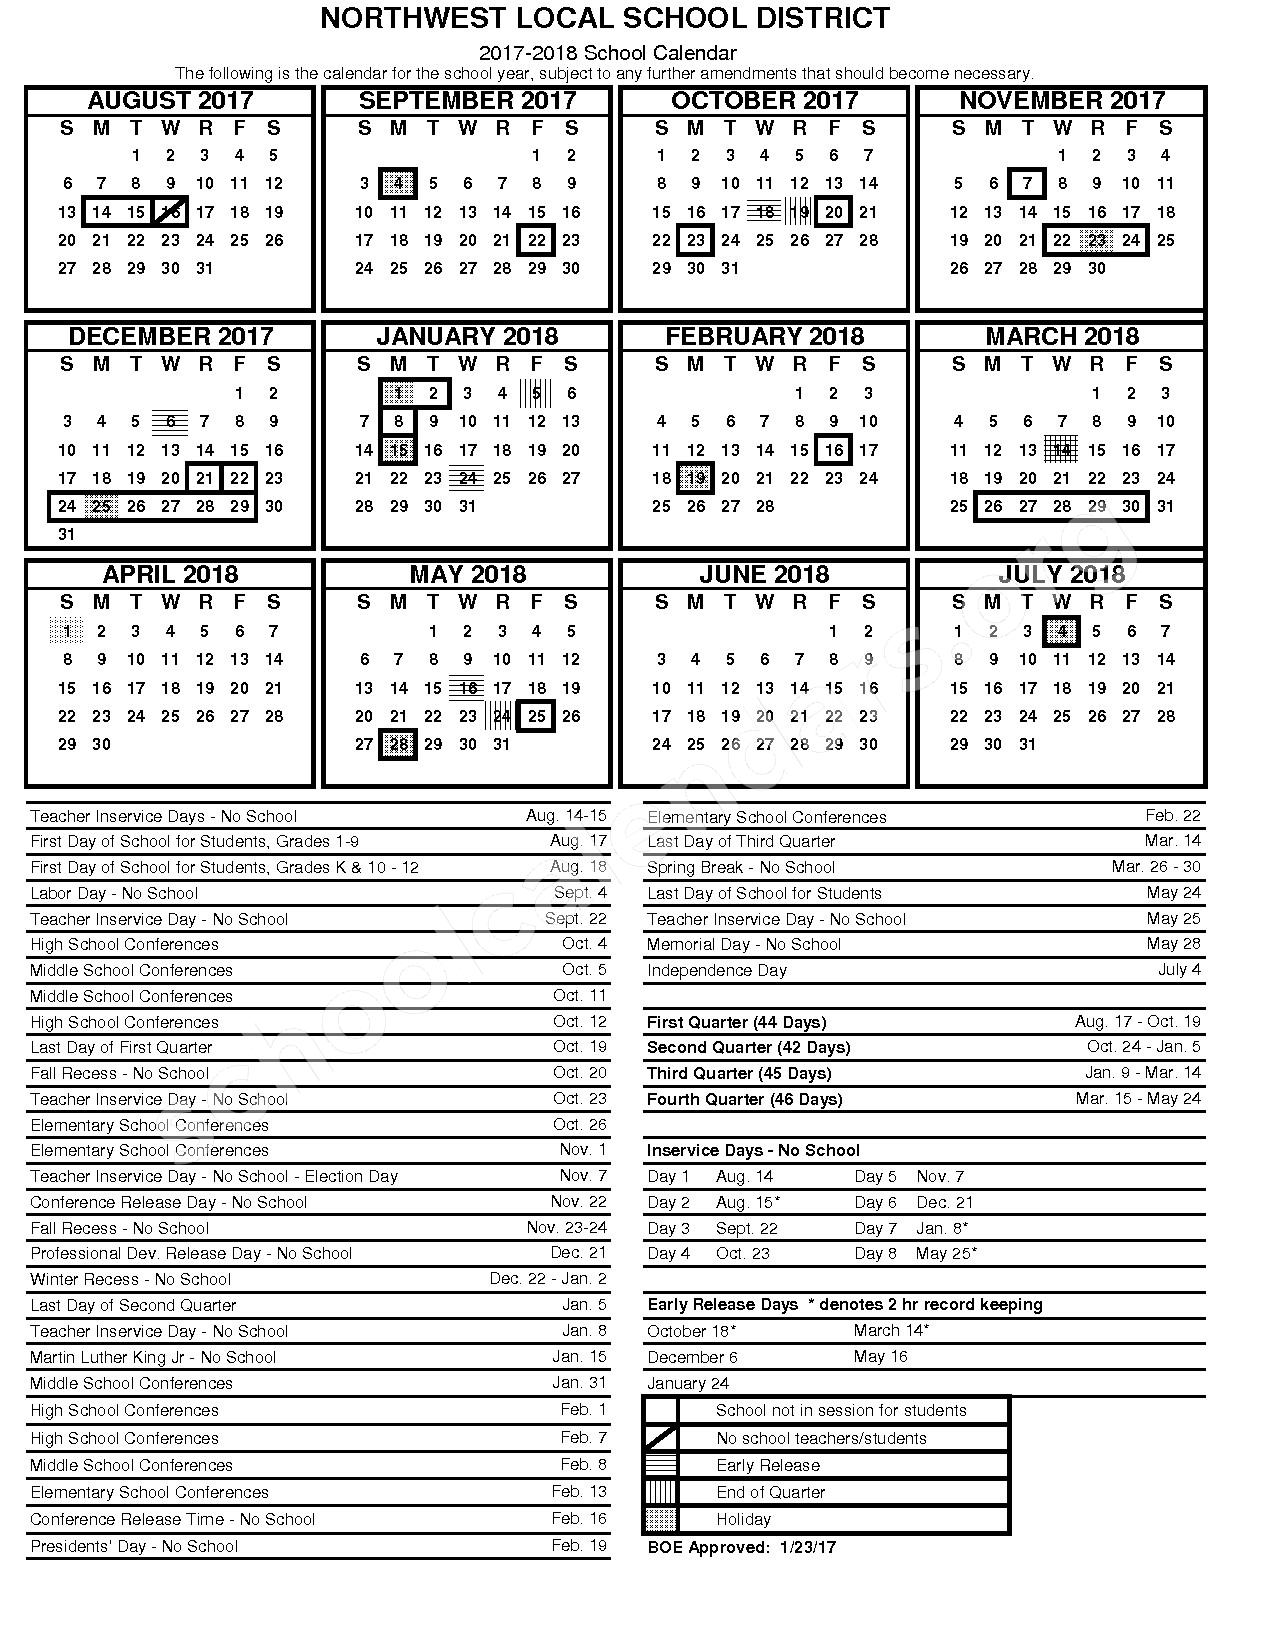 2017 - 2018 District Calendar – Northwest Local School District (Hamilton County) – page 1